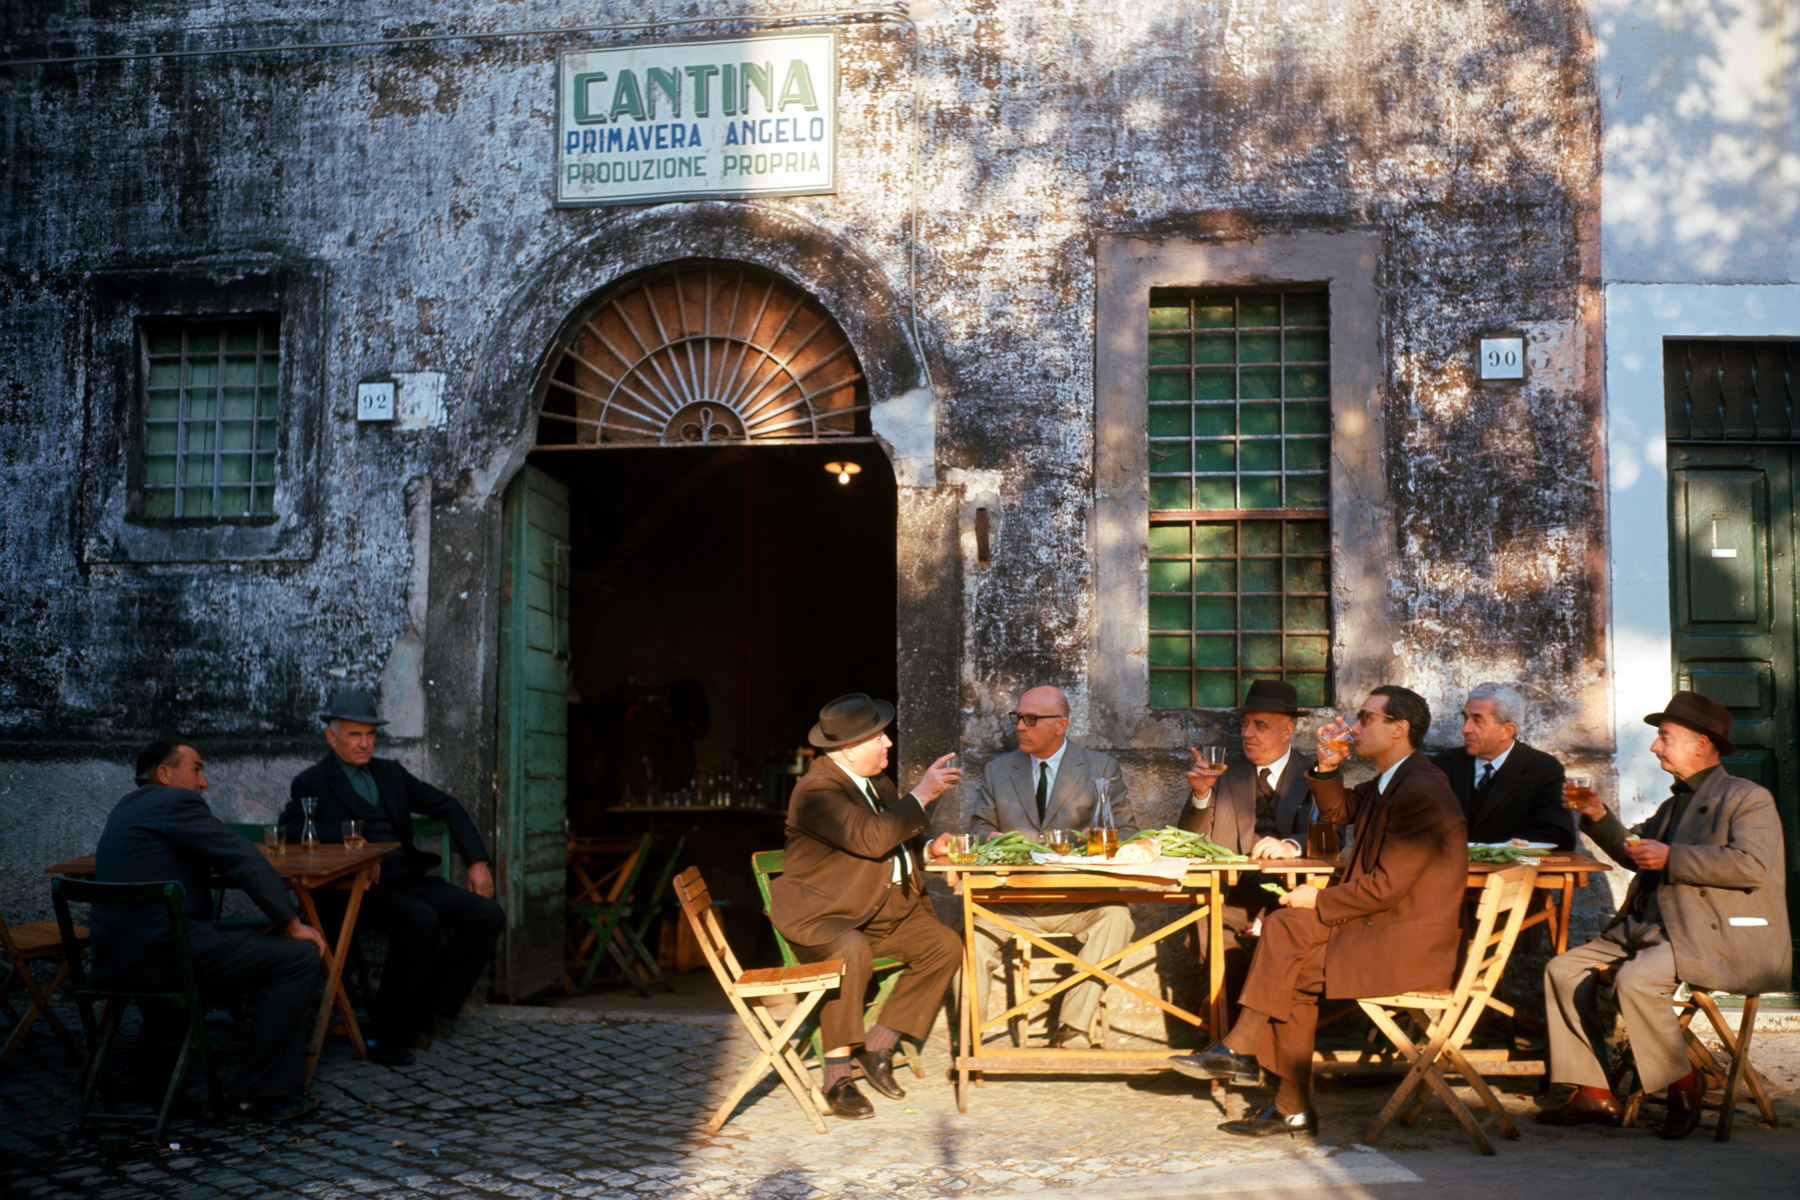 Old people sitting at the tables outside a tavern in Italy